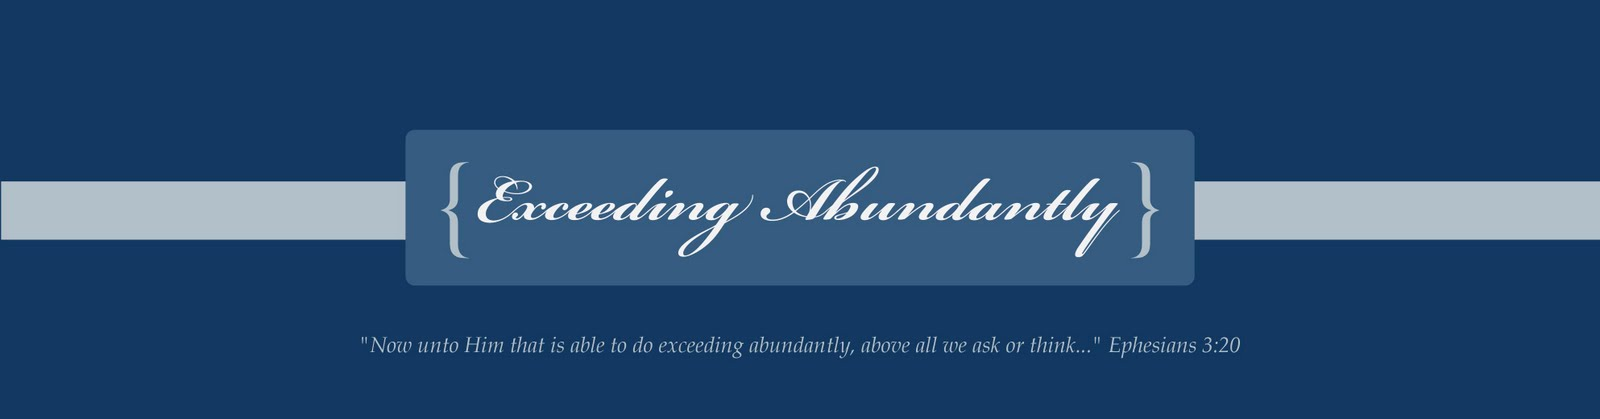 Exceeding Abundantly